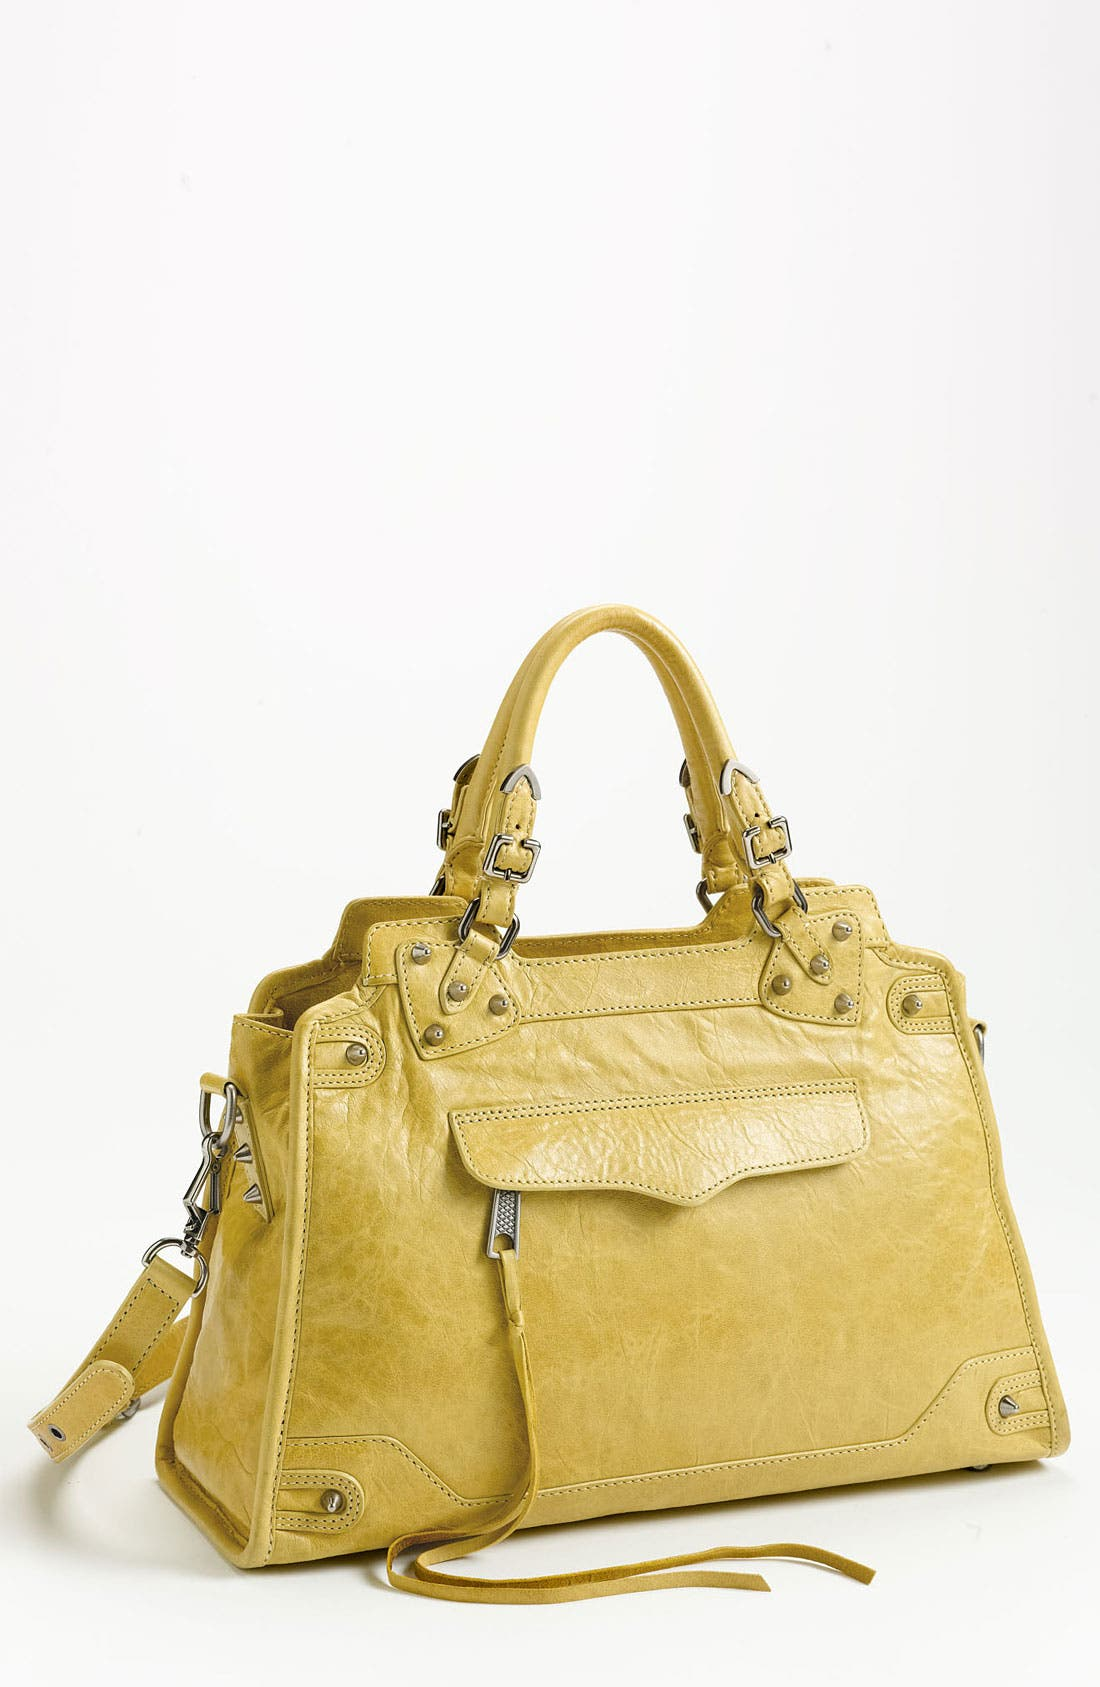 Alternate Image 1 Selected - Rebecca Minkoff 'Desire' Studded Satchel